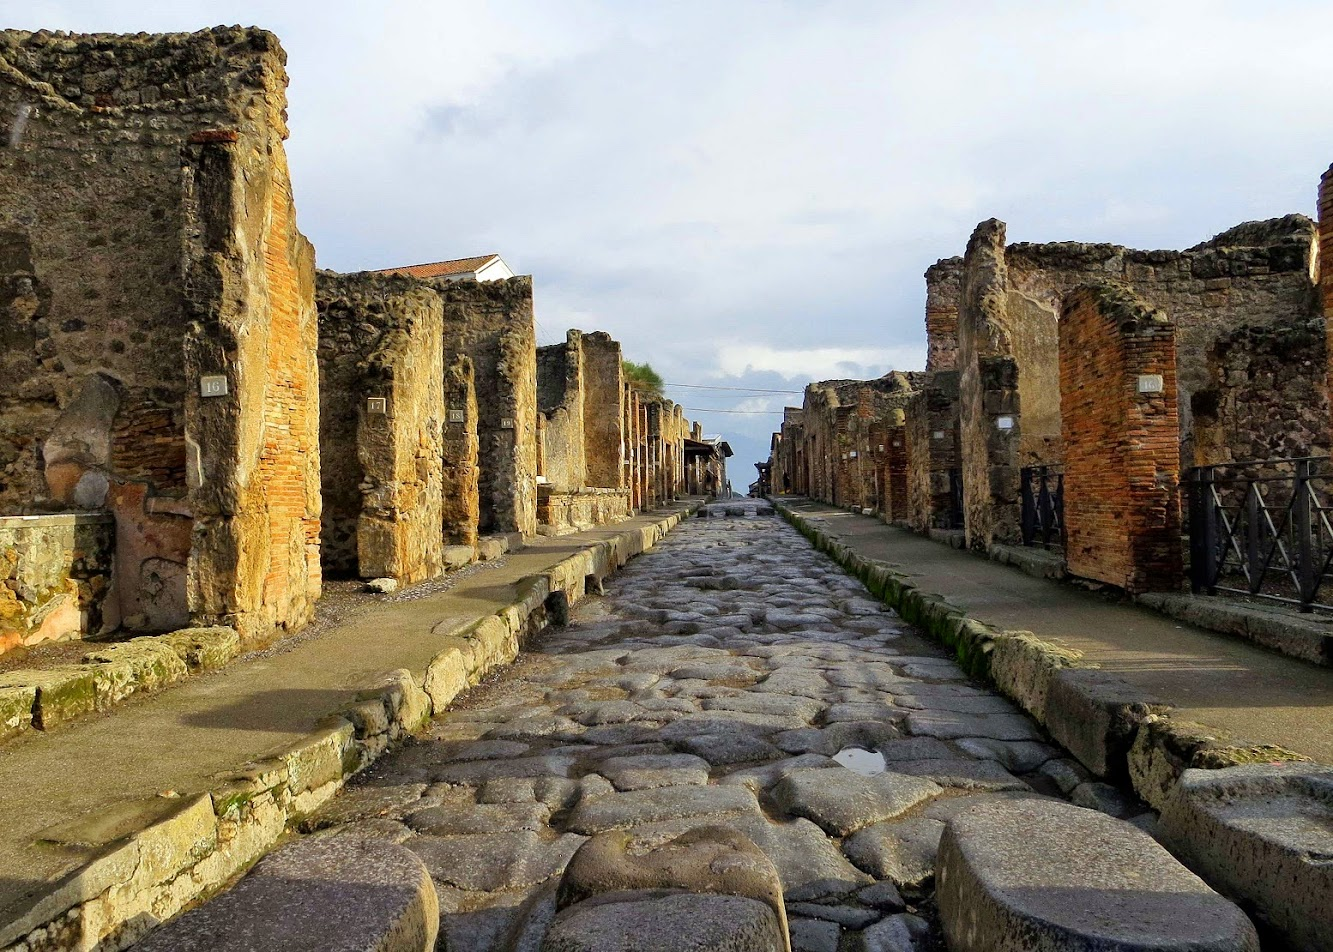 Italy: Guilty thieves return ancient objects to Pompeii